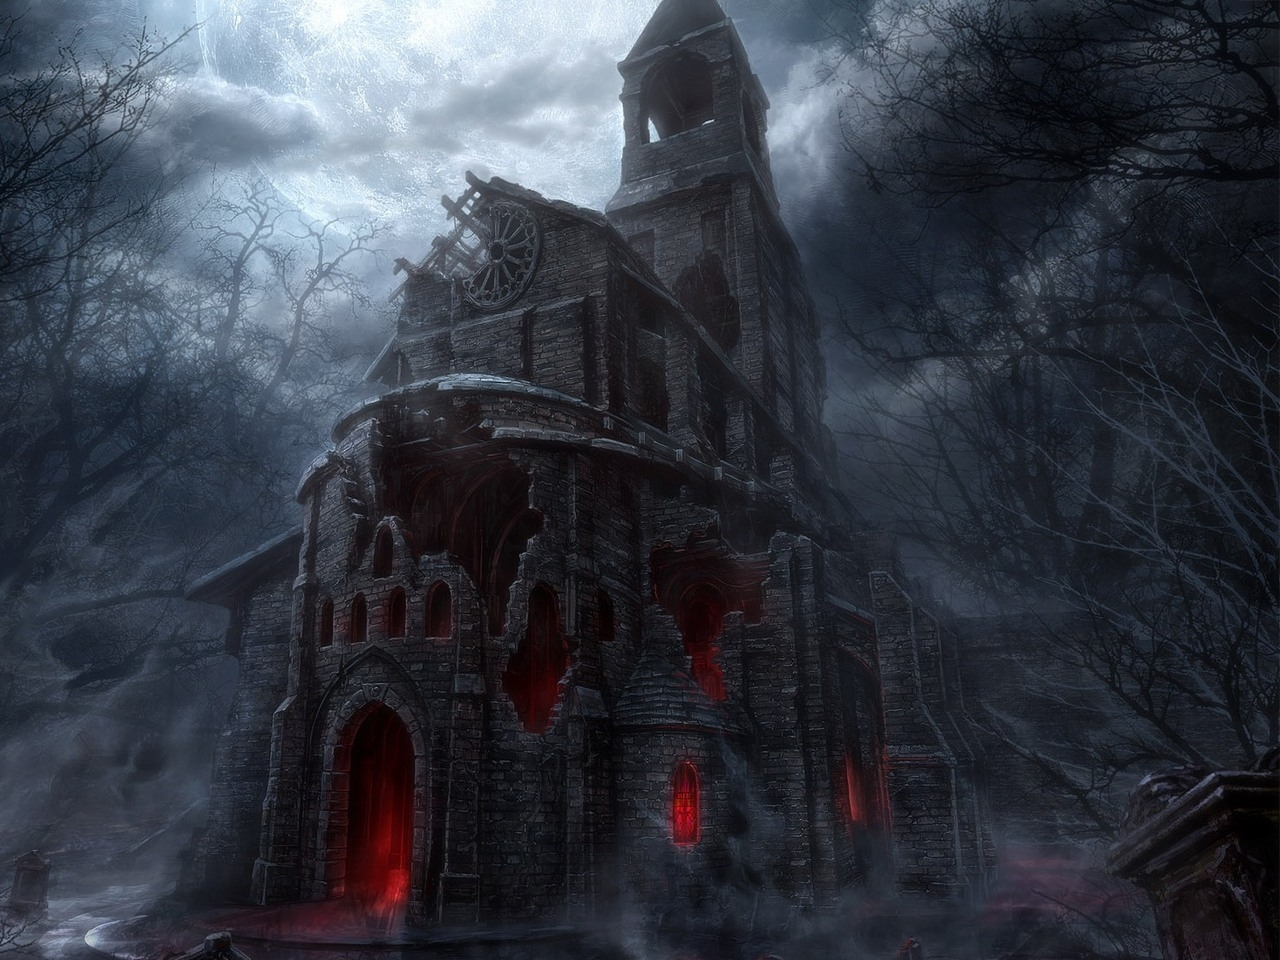 images Haunted House HD wallpaper and background photos 16050669 1280x960